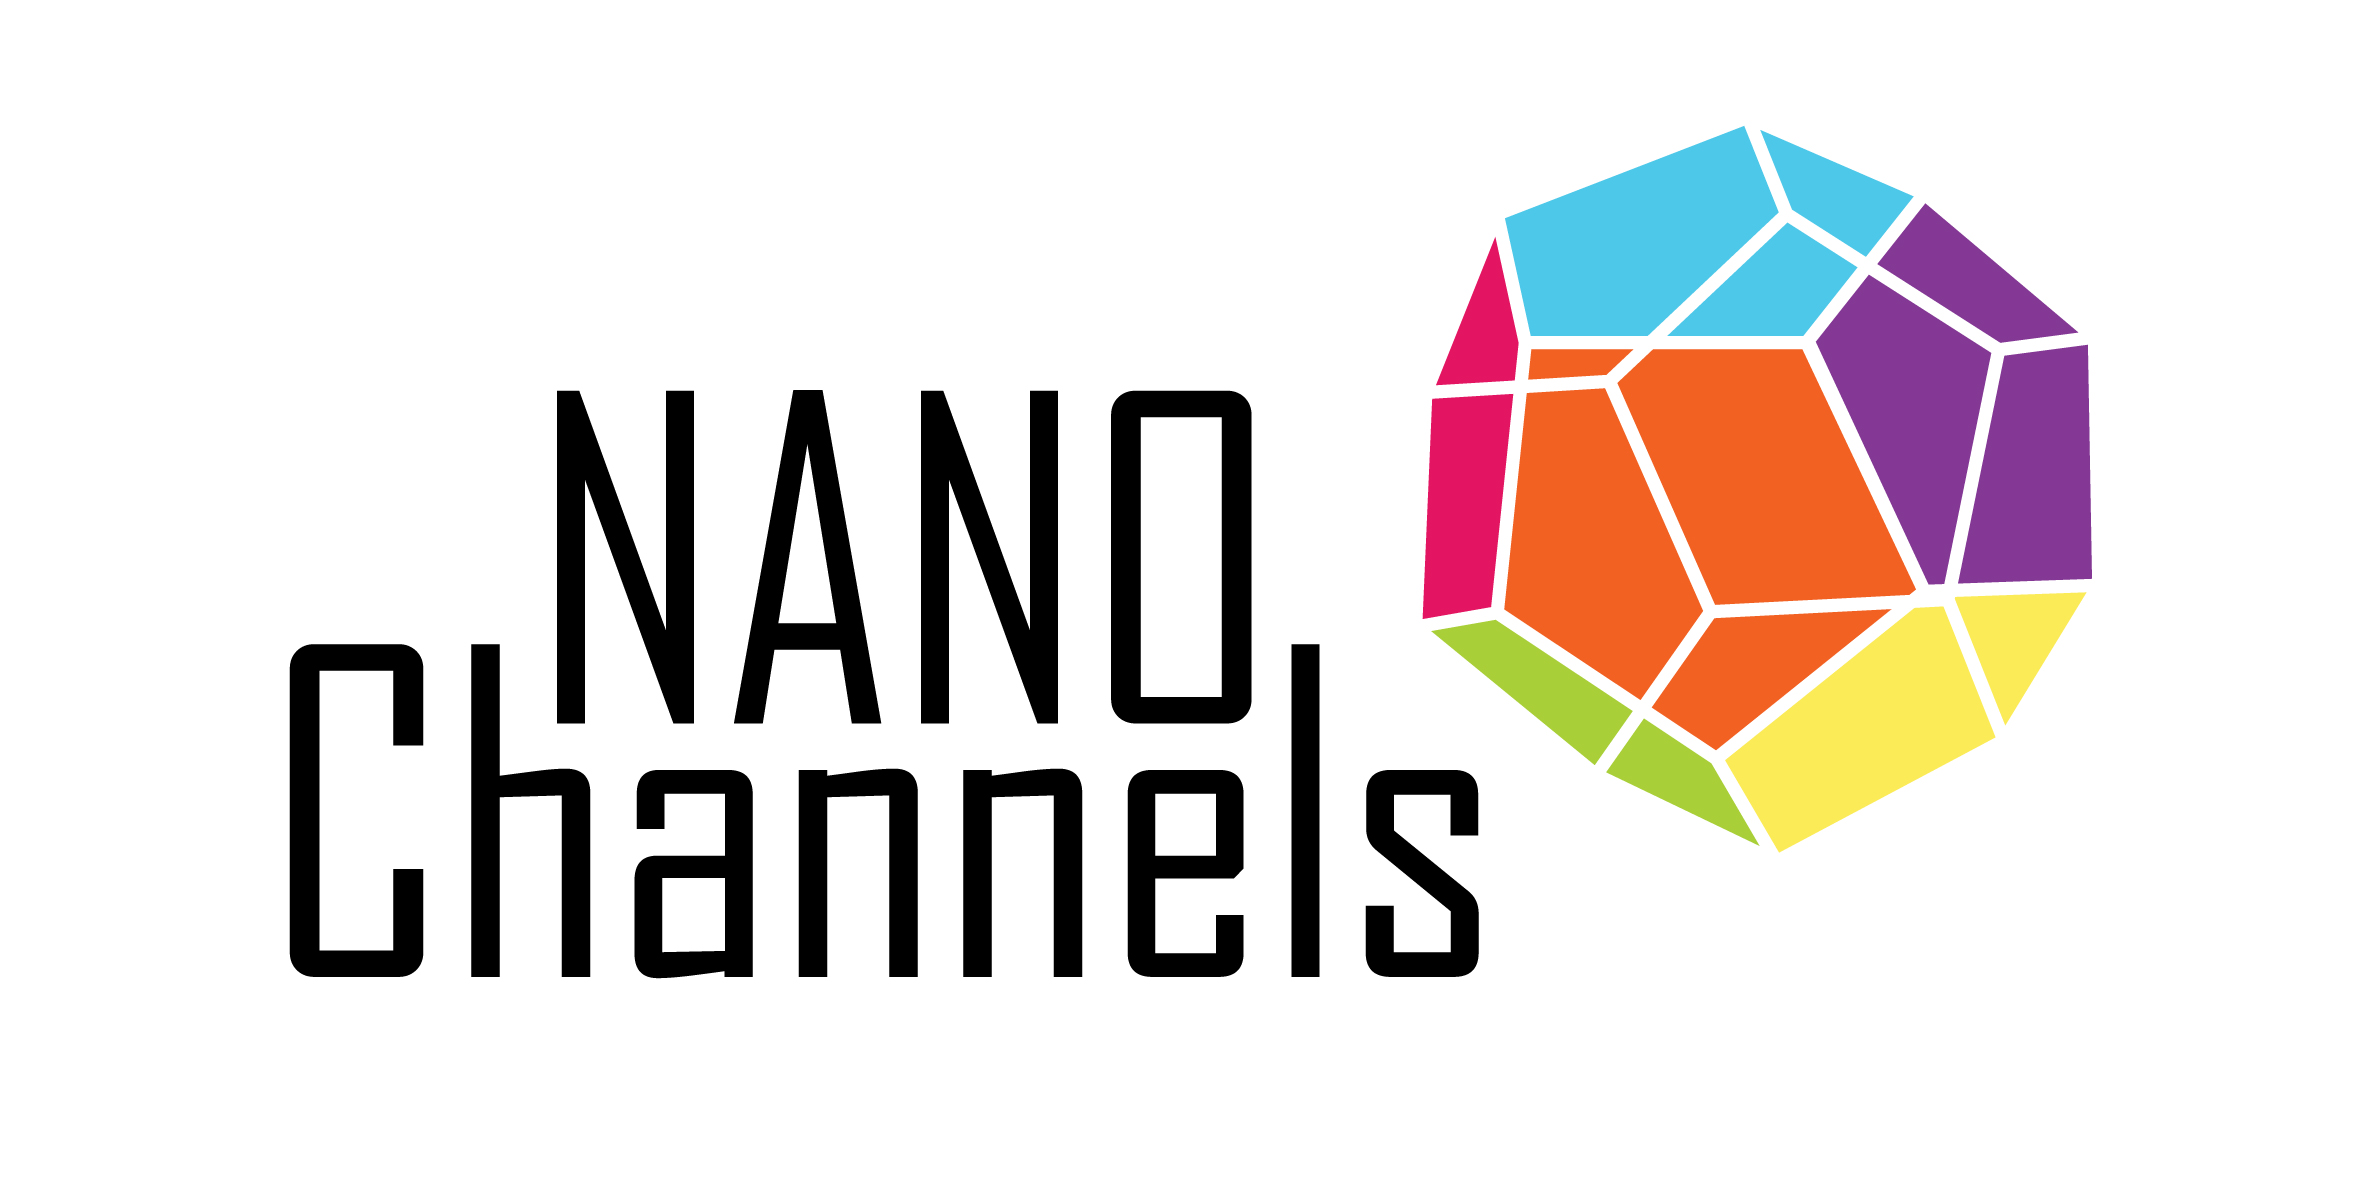 NANOCHANNELS: Engaging and debating nanotechnology on media channels to European citizens